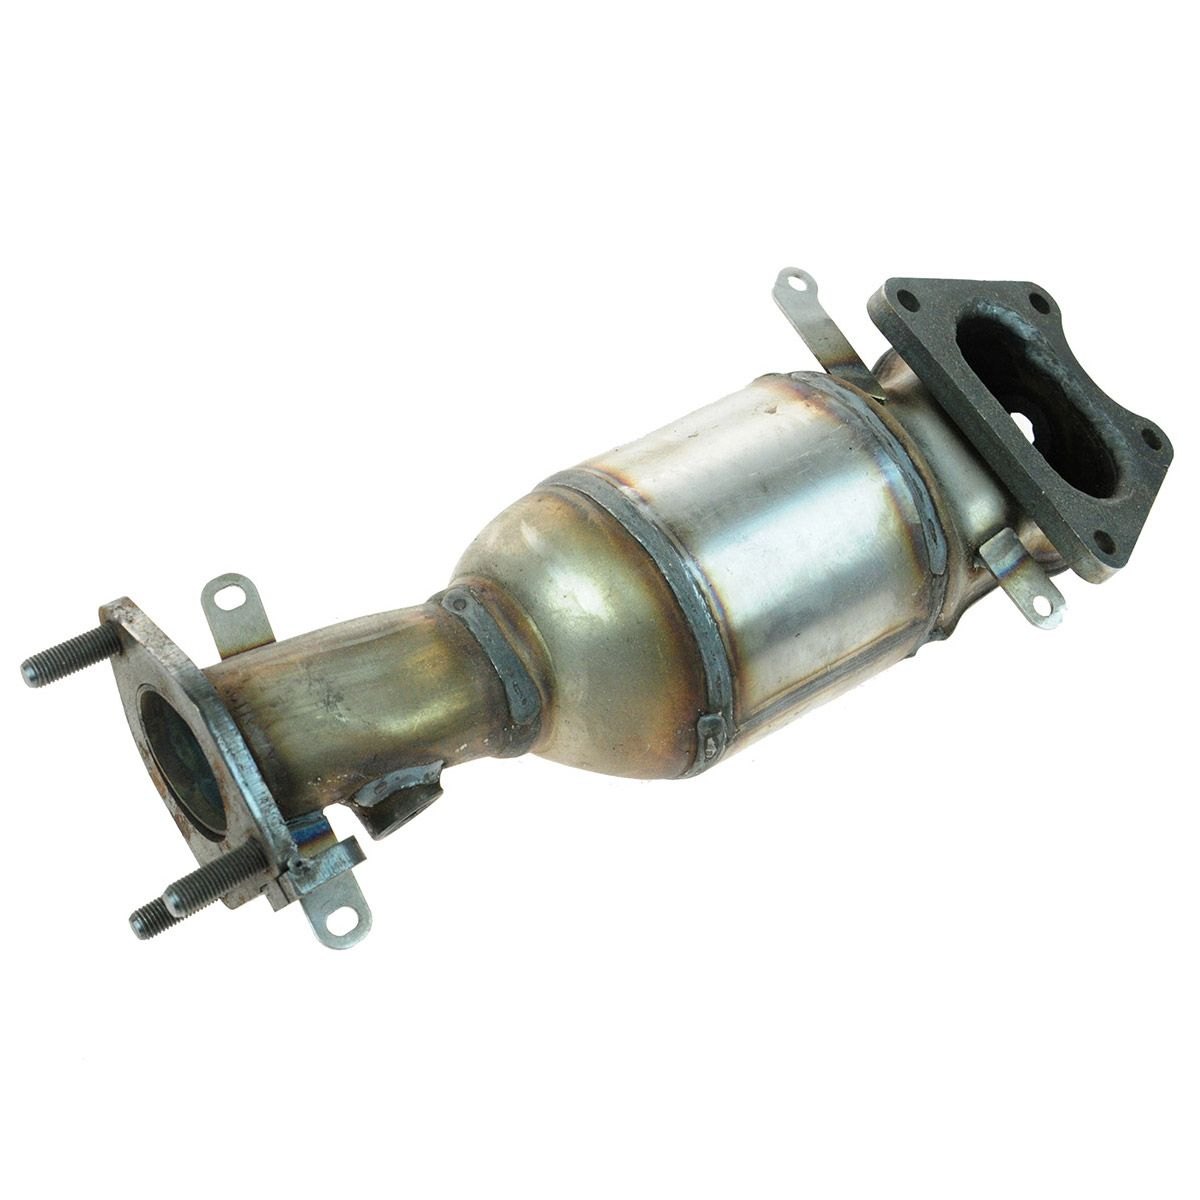 Rear Exhaust Manifold W/ Catalytic Converter For Accord